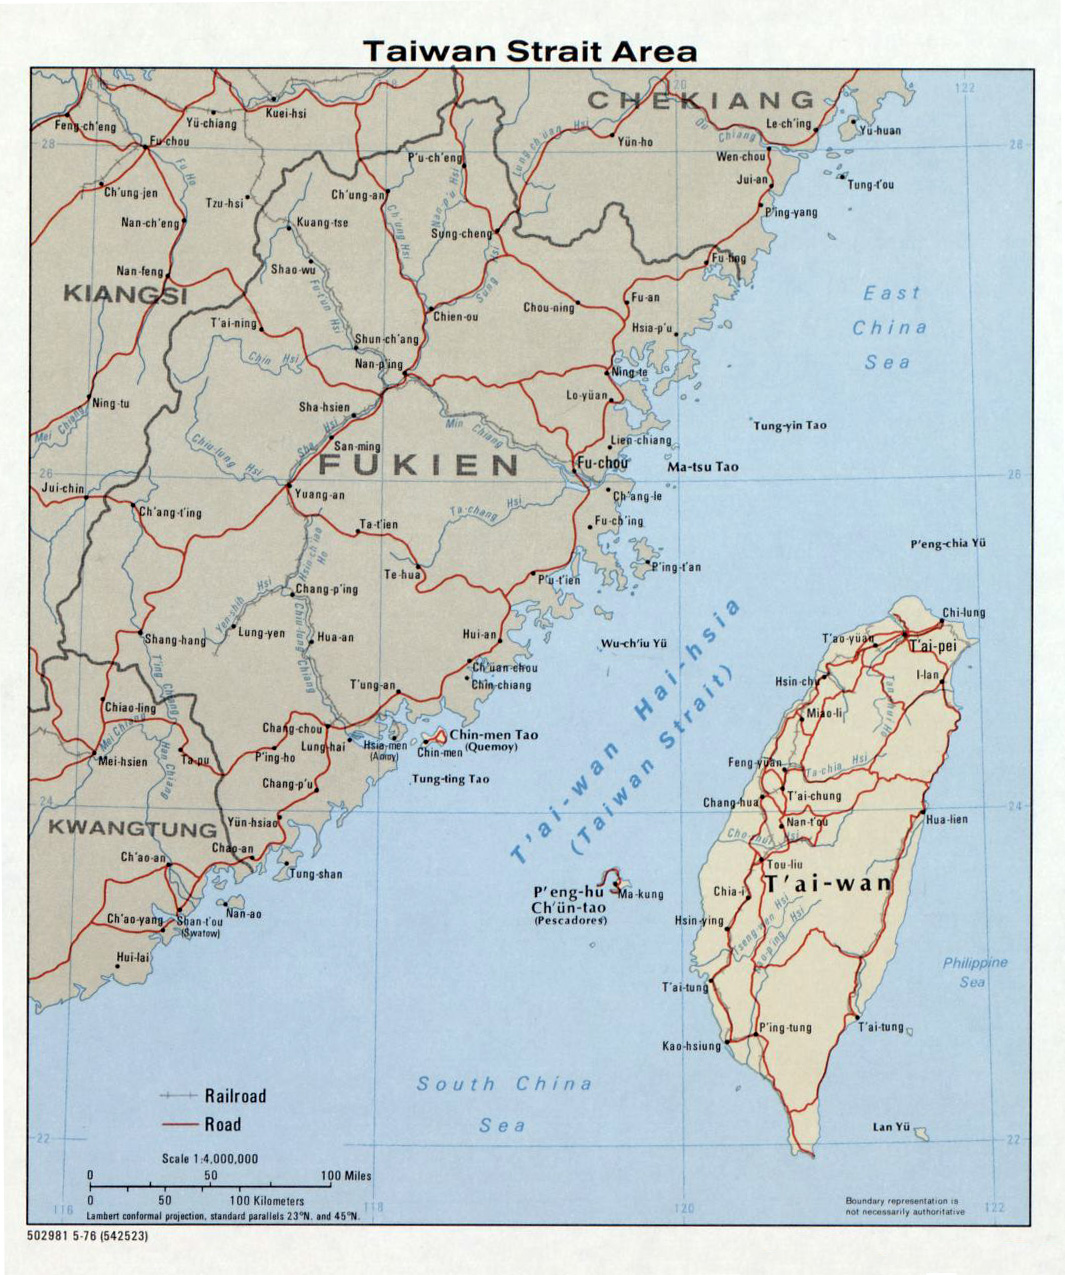 Maps of taiwan detailed map of taiwan in english tourist map of large taiwan strait area map 1976 gumiabroncs Choice Image